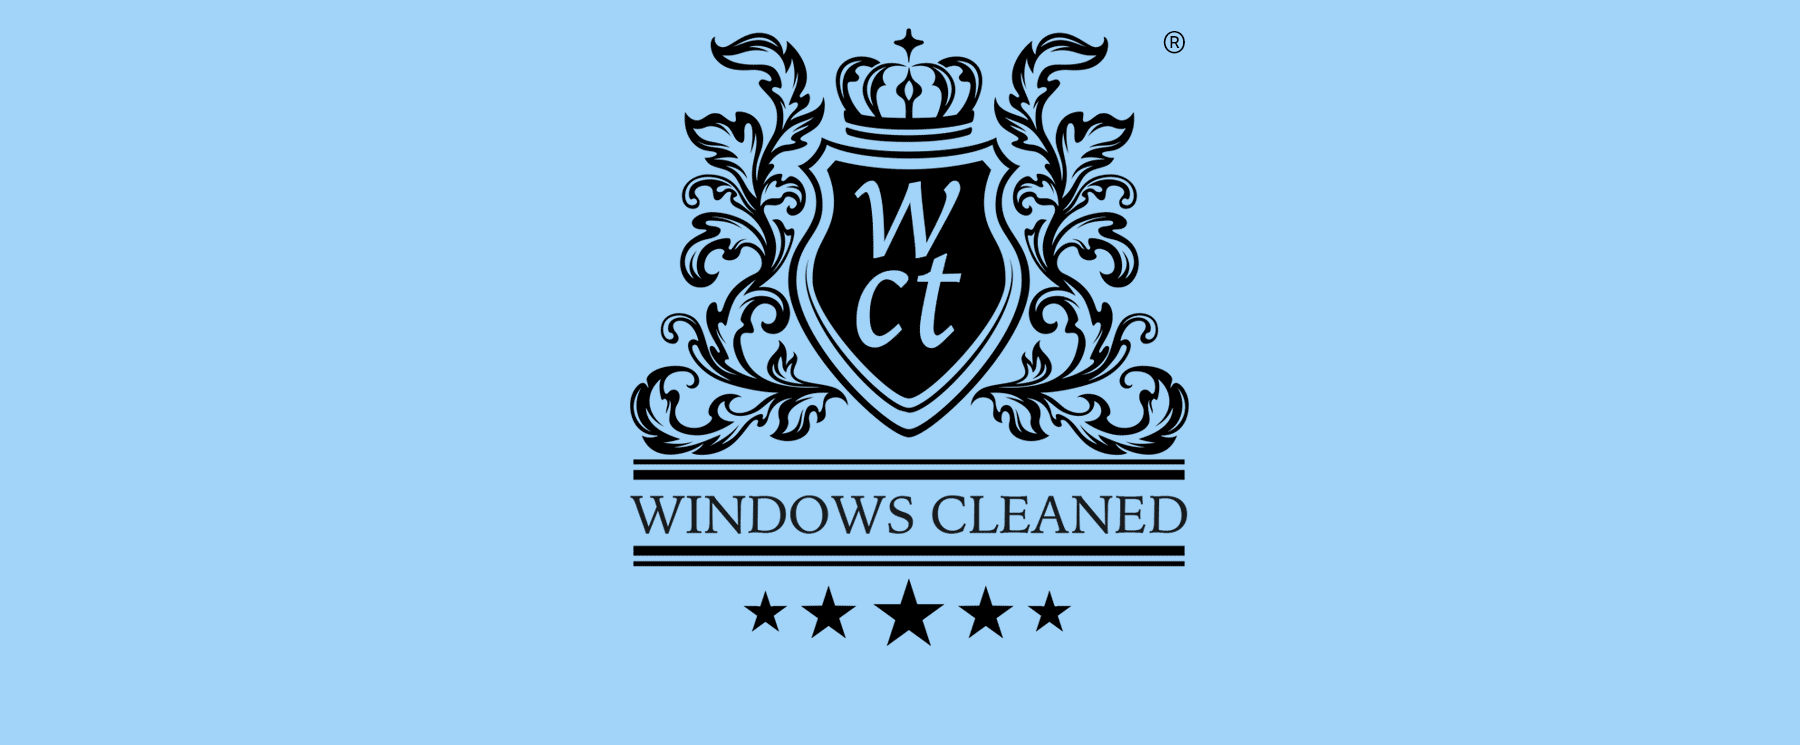 Windows Cleaned Today logo